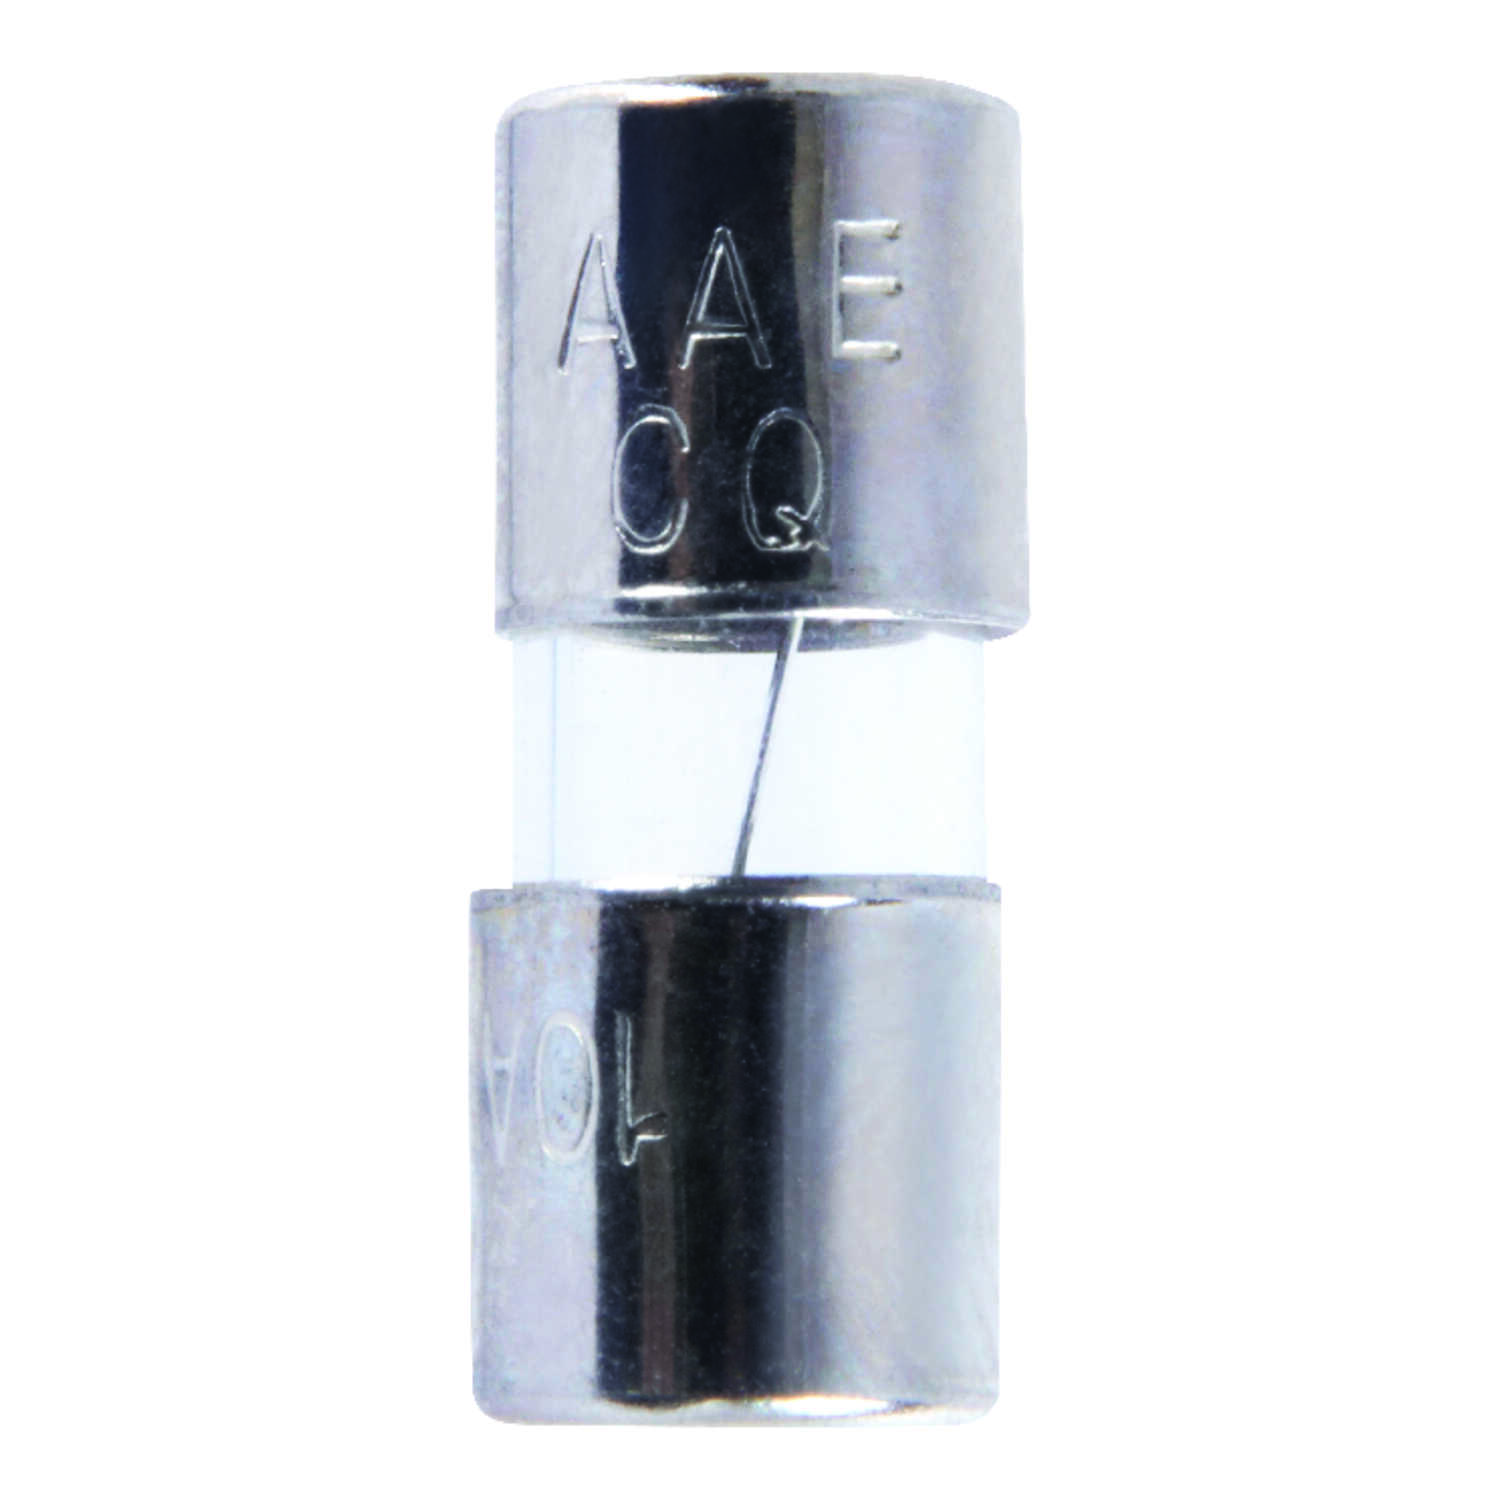 Jandorf  AGA  10 amps 125 volt Glass  Fast Acting Fuse  4 pk